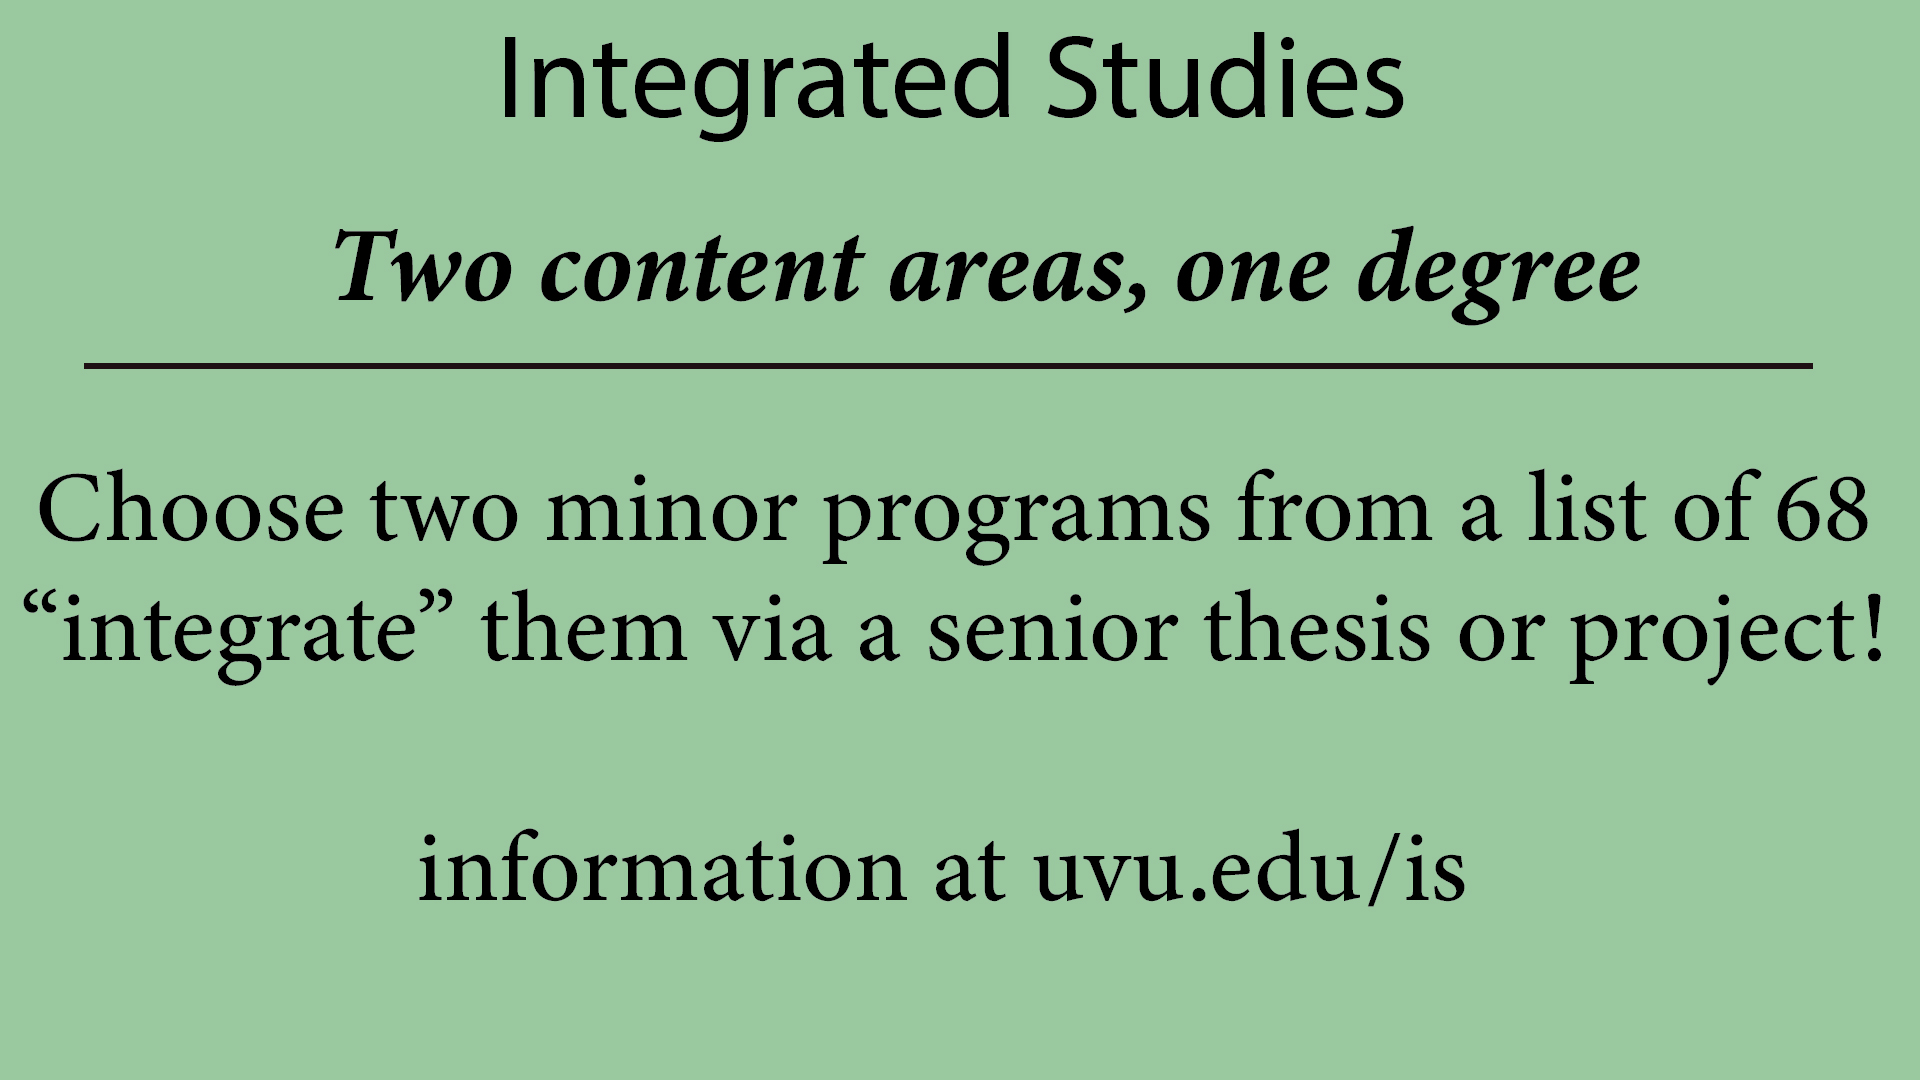 two content areas, one degree